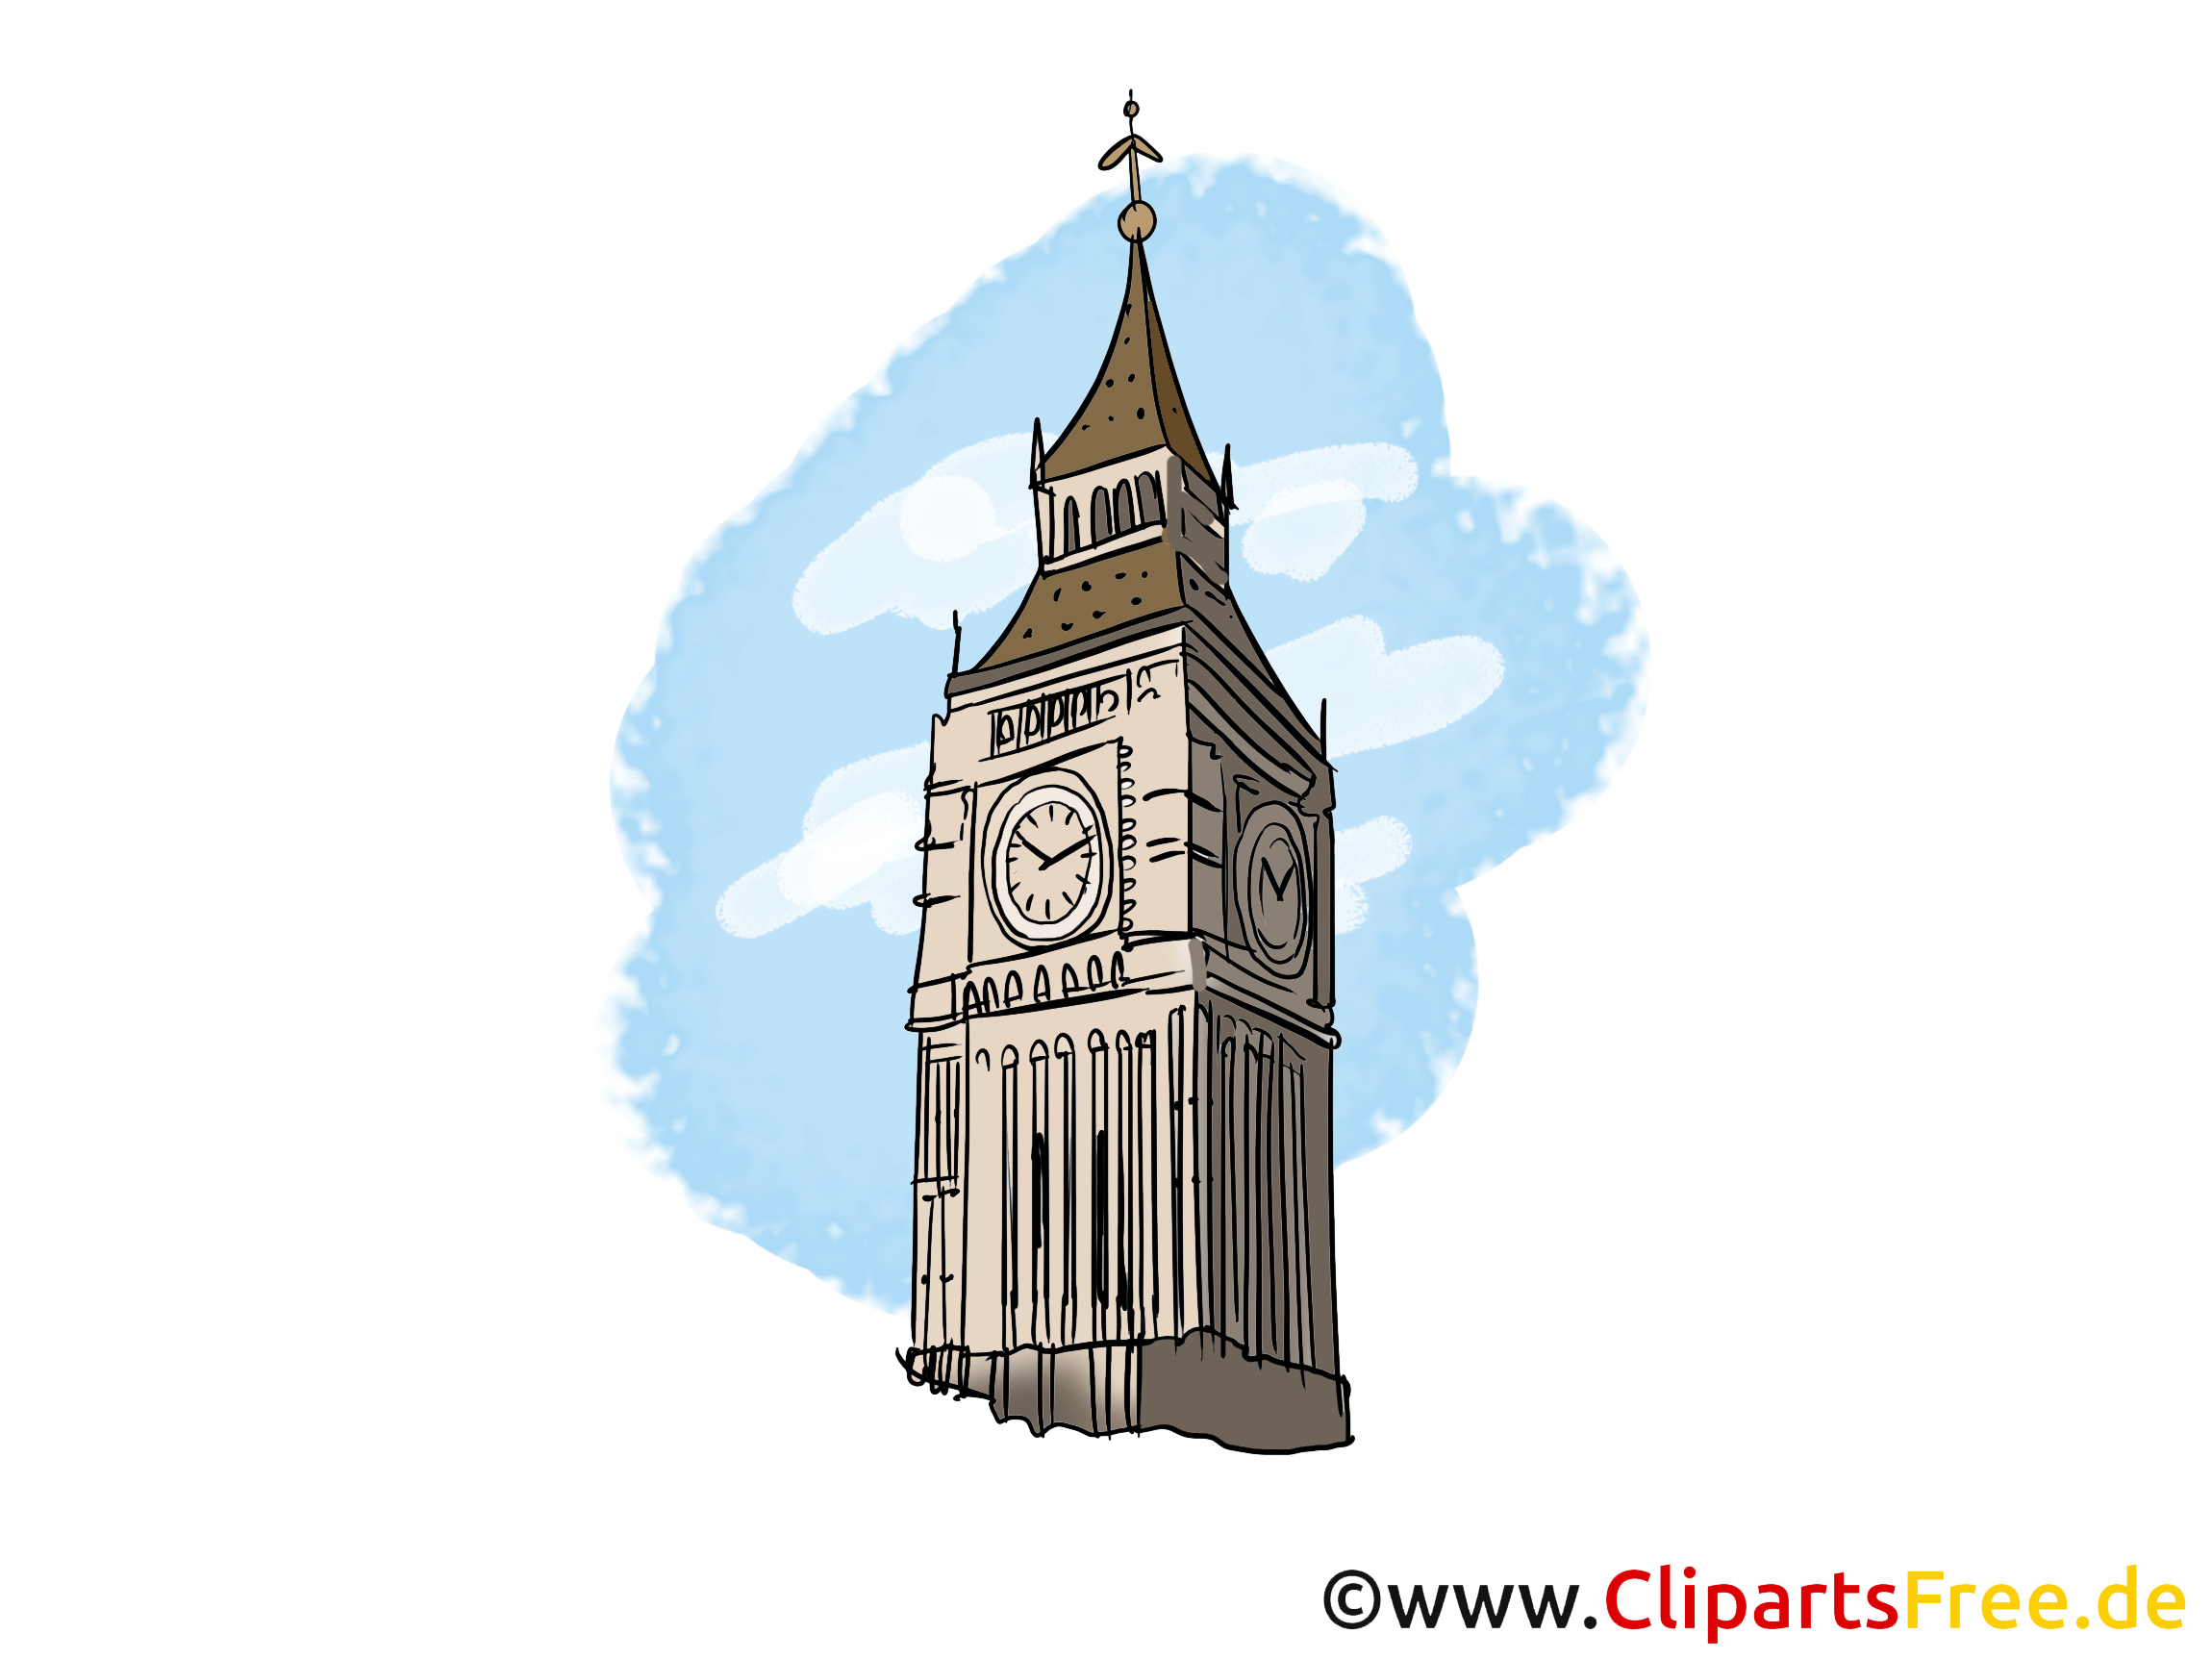 Big Ben images - Londres dessins gratuits